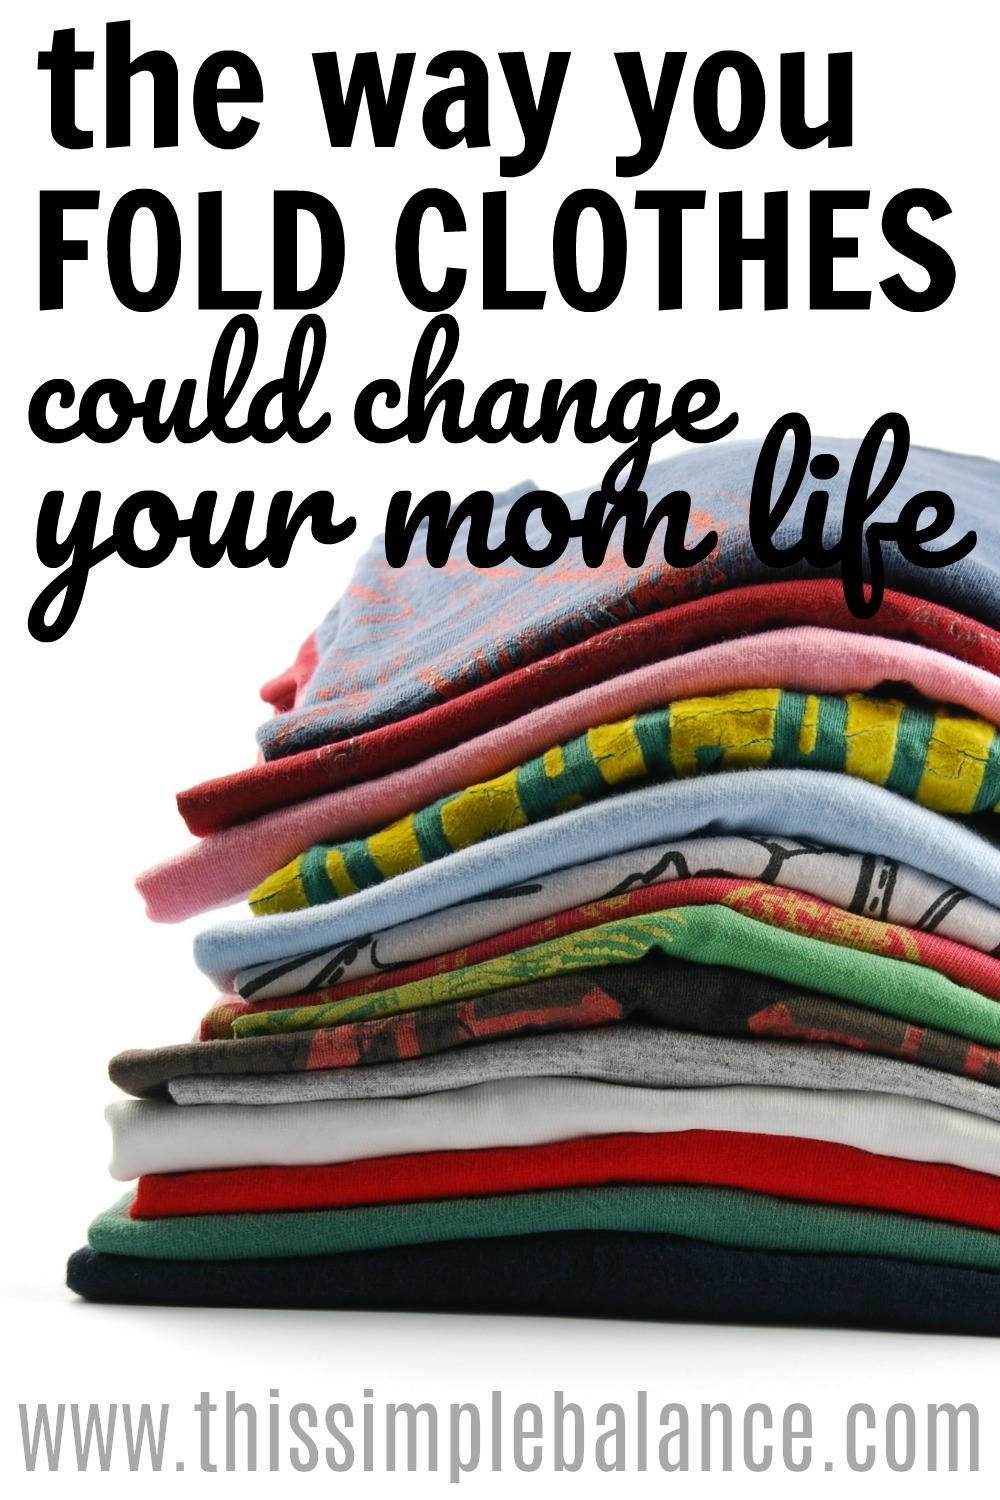 Folding Clothes with the Konmari Method: This revolutionized our dresser drawers! No more messy drawers that kids (or husbands) have sifted through to find what they want. Simply amazing!